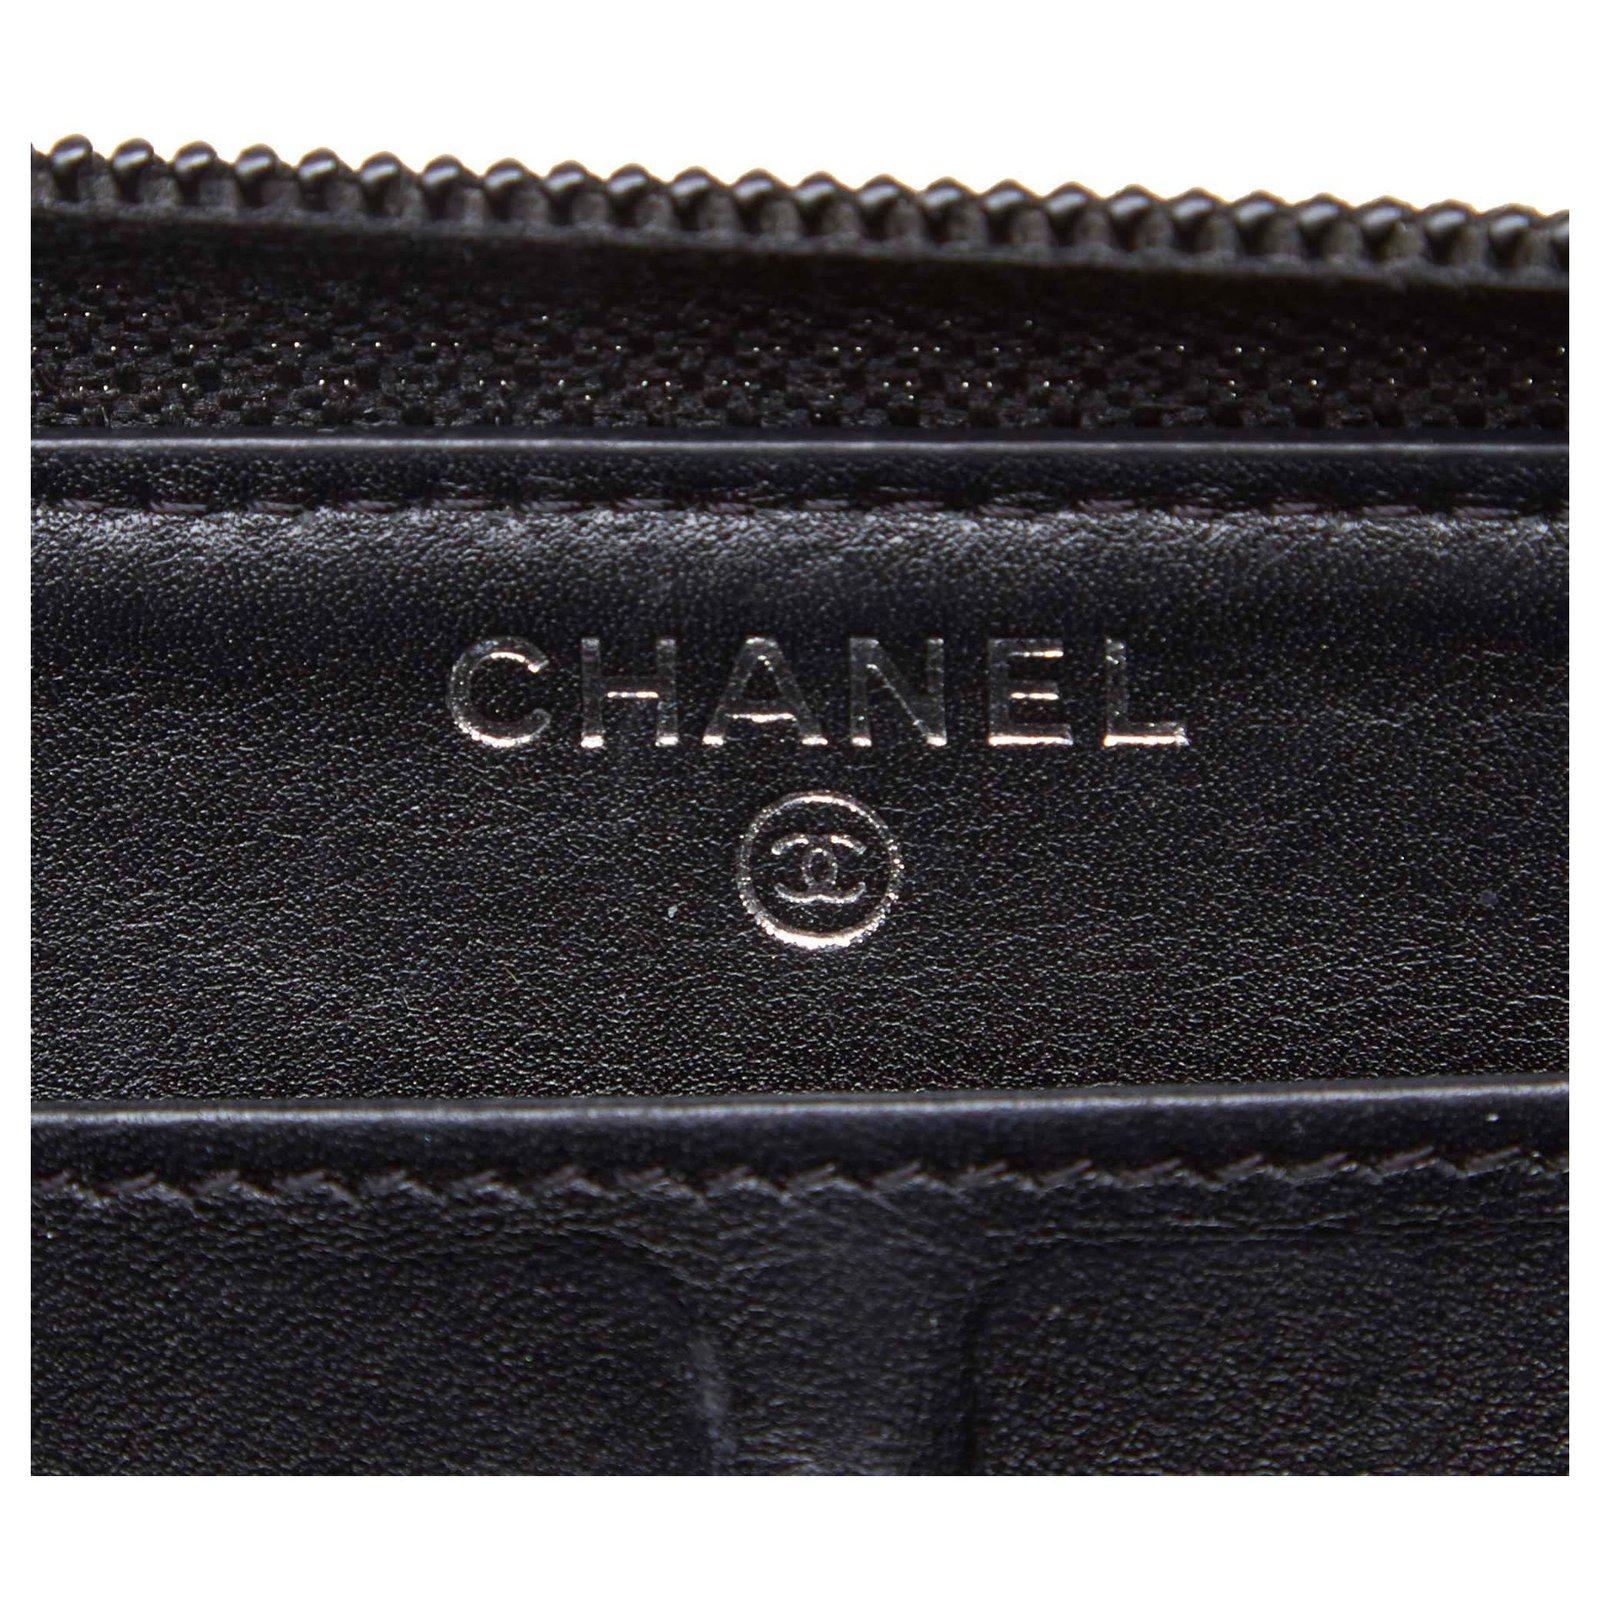 65fbbeb50046 Chanel Chanel Black Patent Leather Boy Long Wallet Purses, wallets, cases  Leather,Patent leather Black ref.122924 - Joli Closet